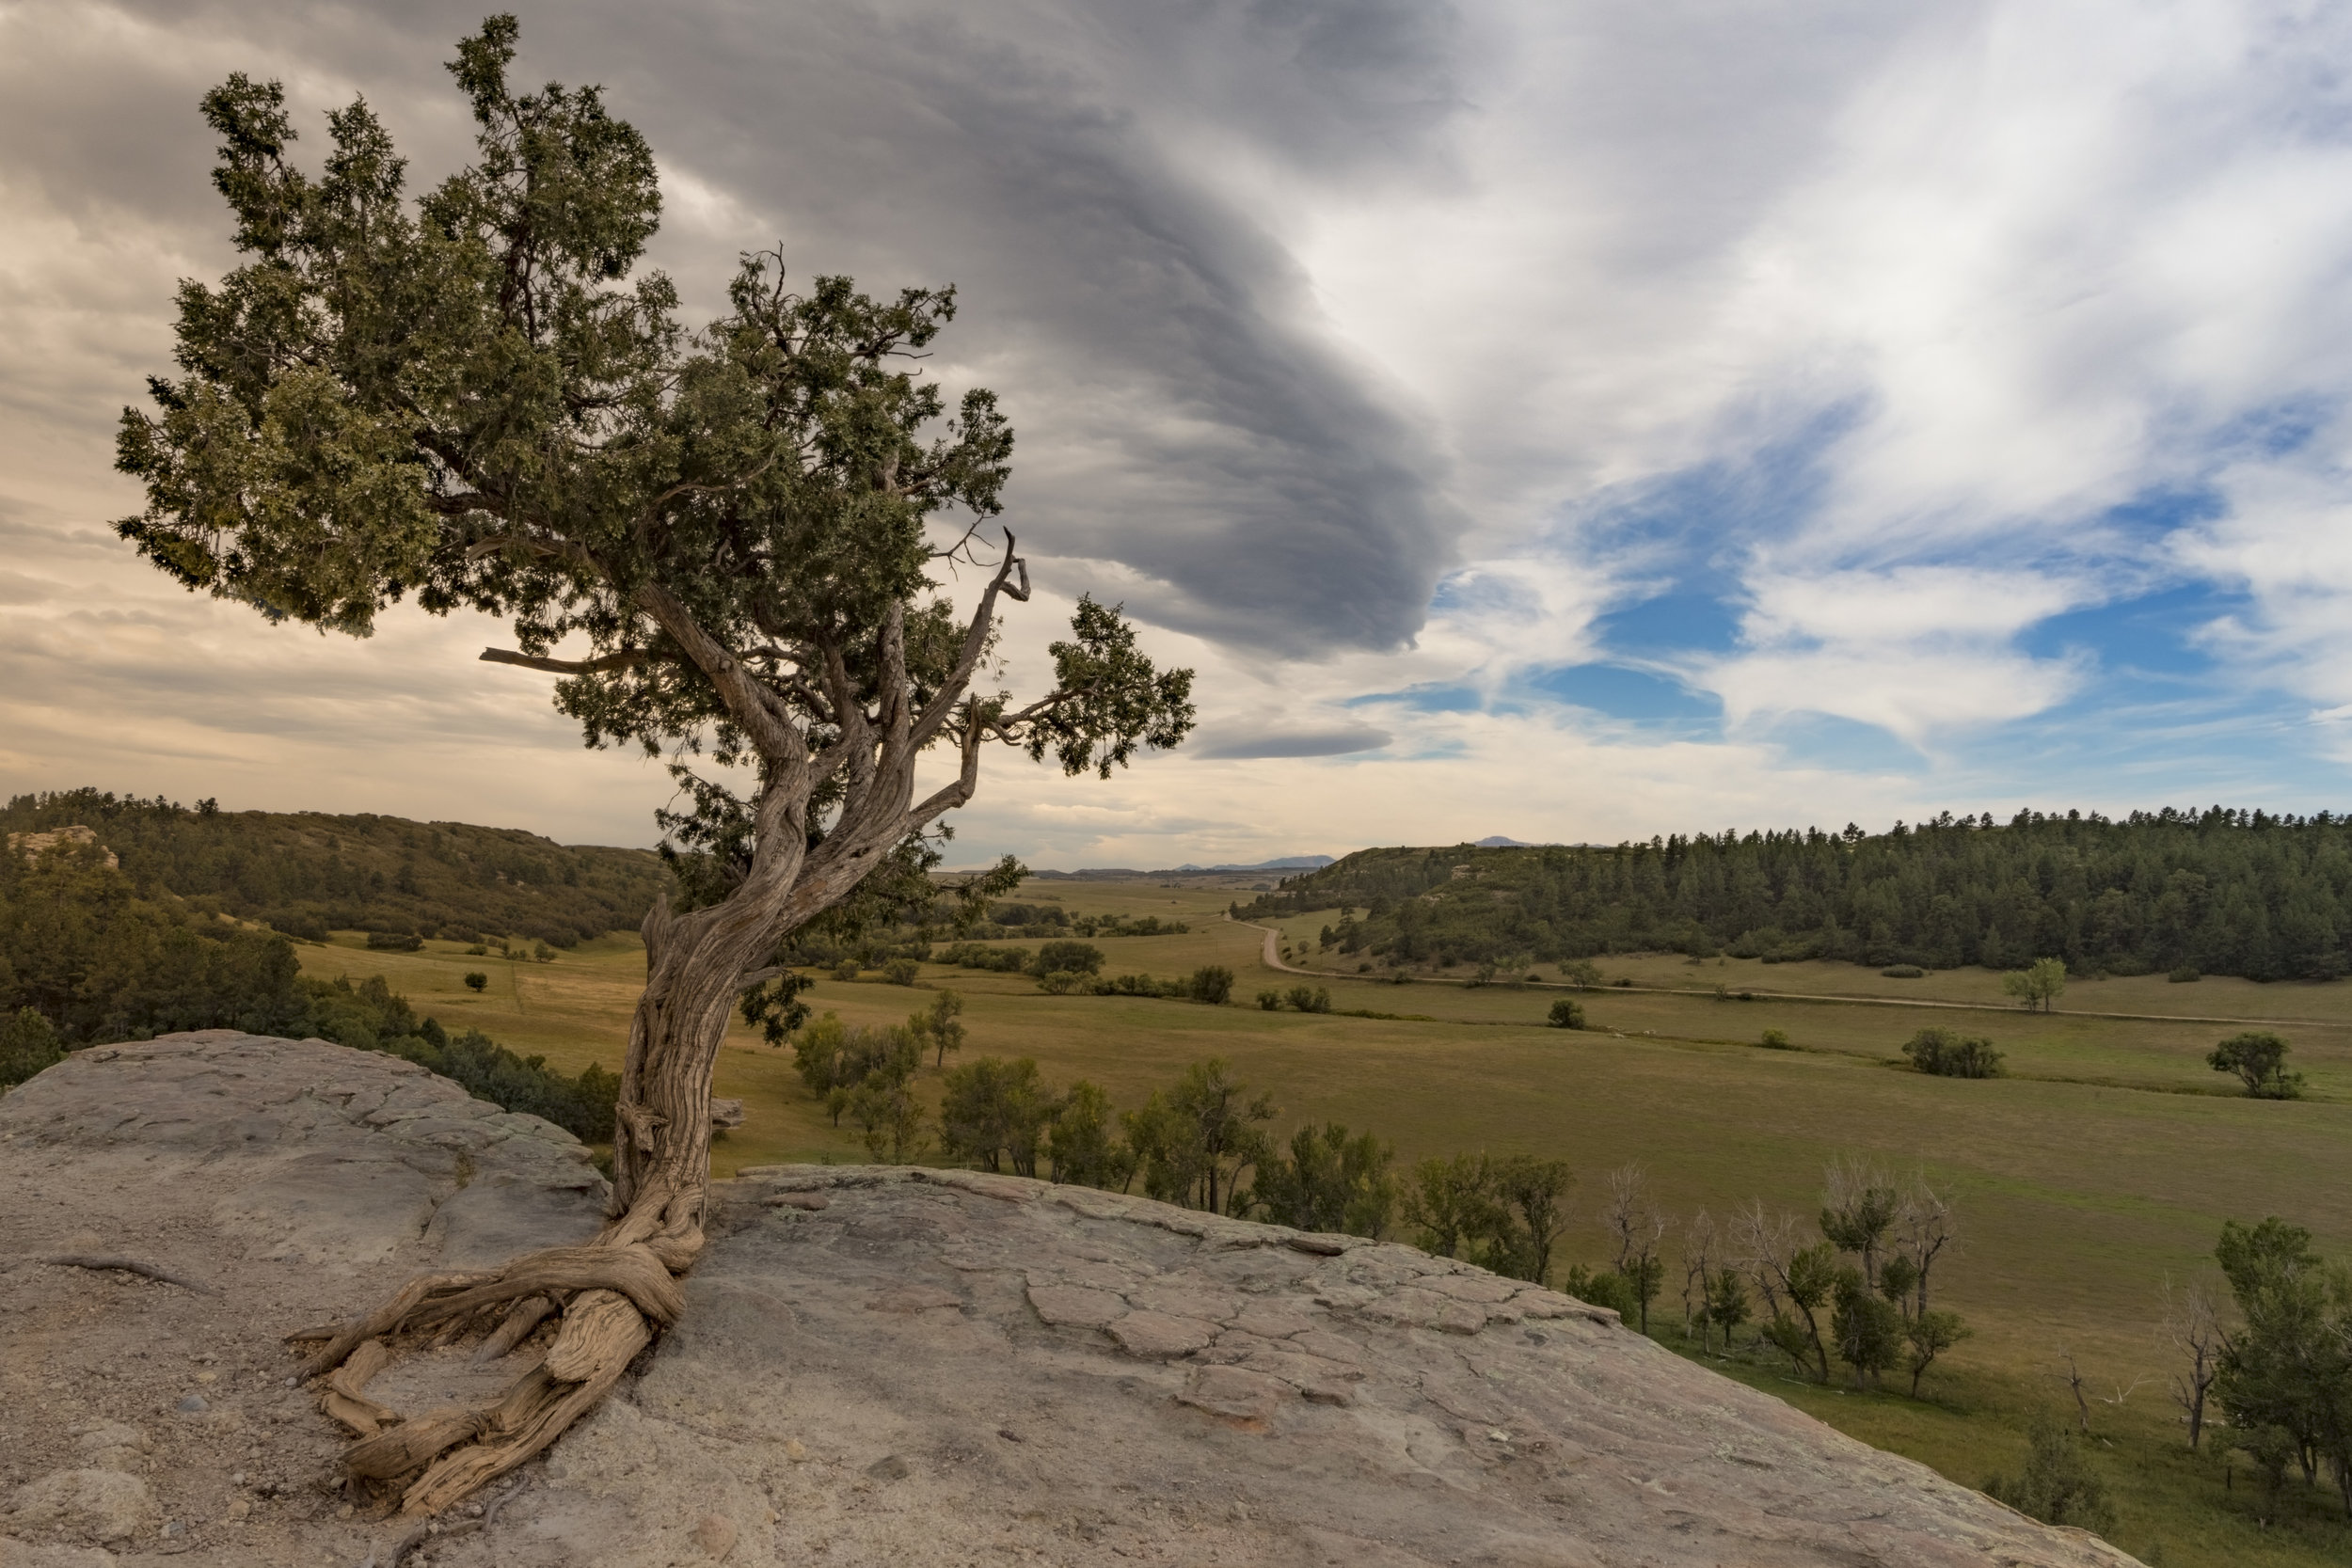 september 4, 2018  castlewood canyon state park - franktown, colorado